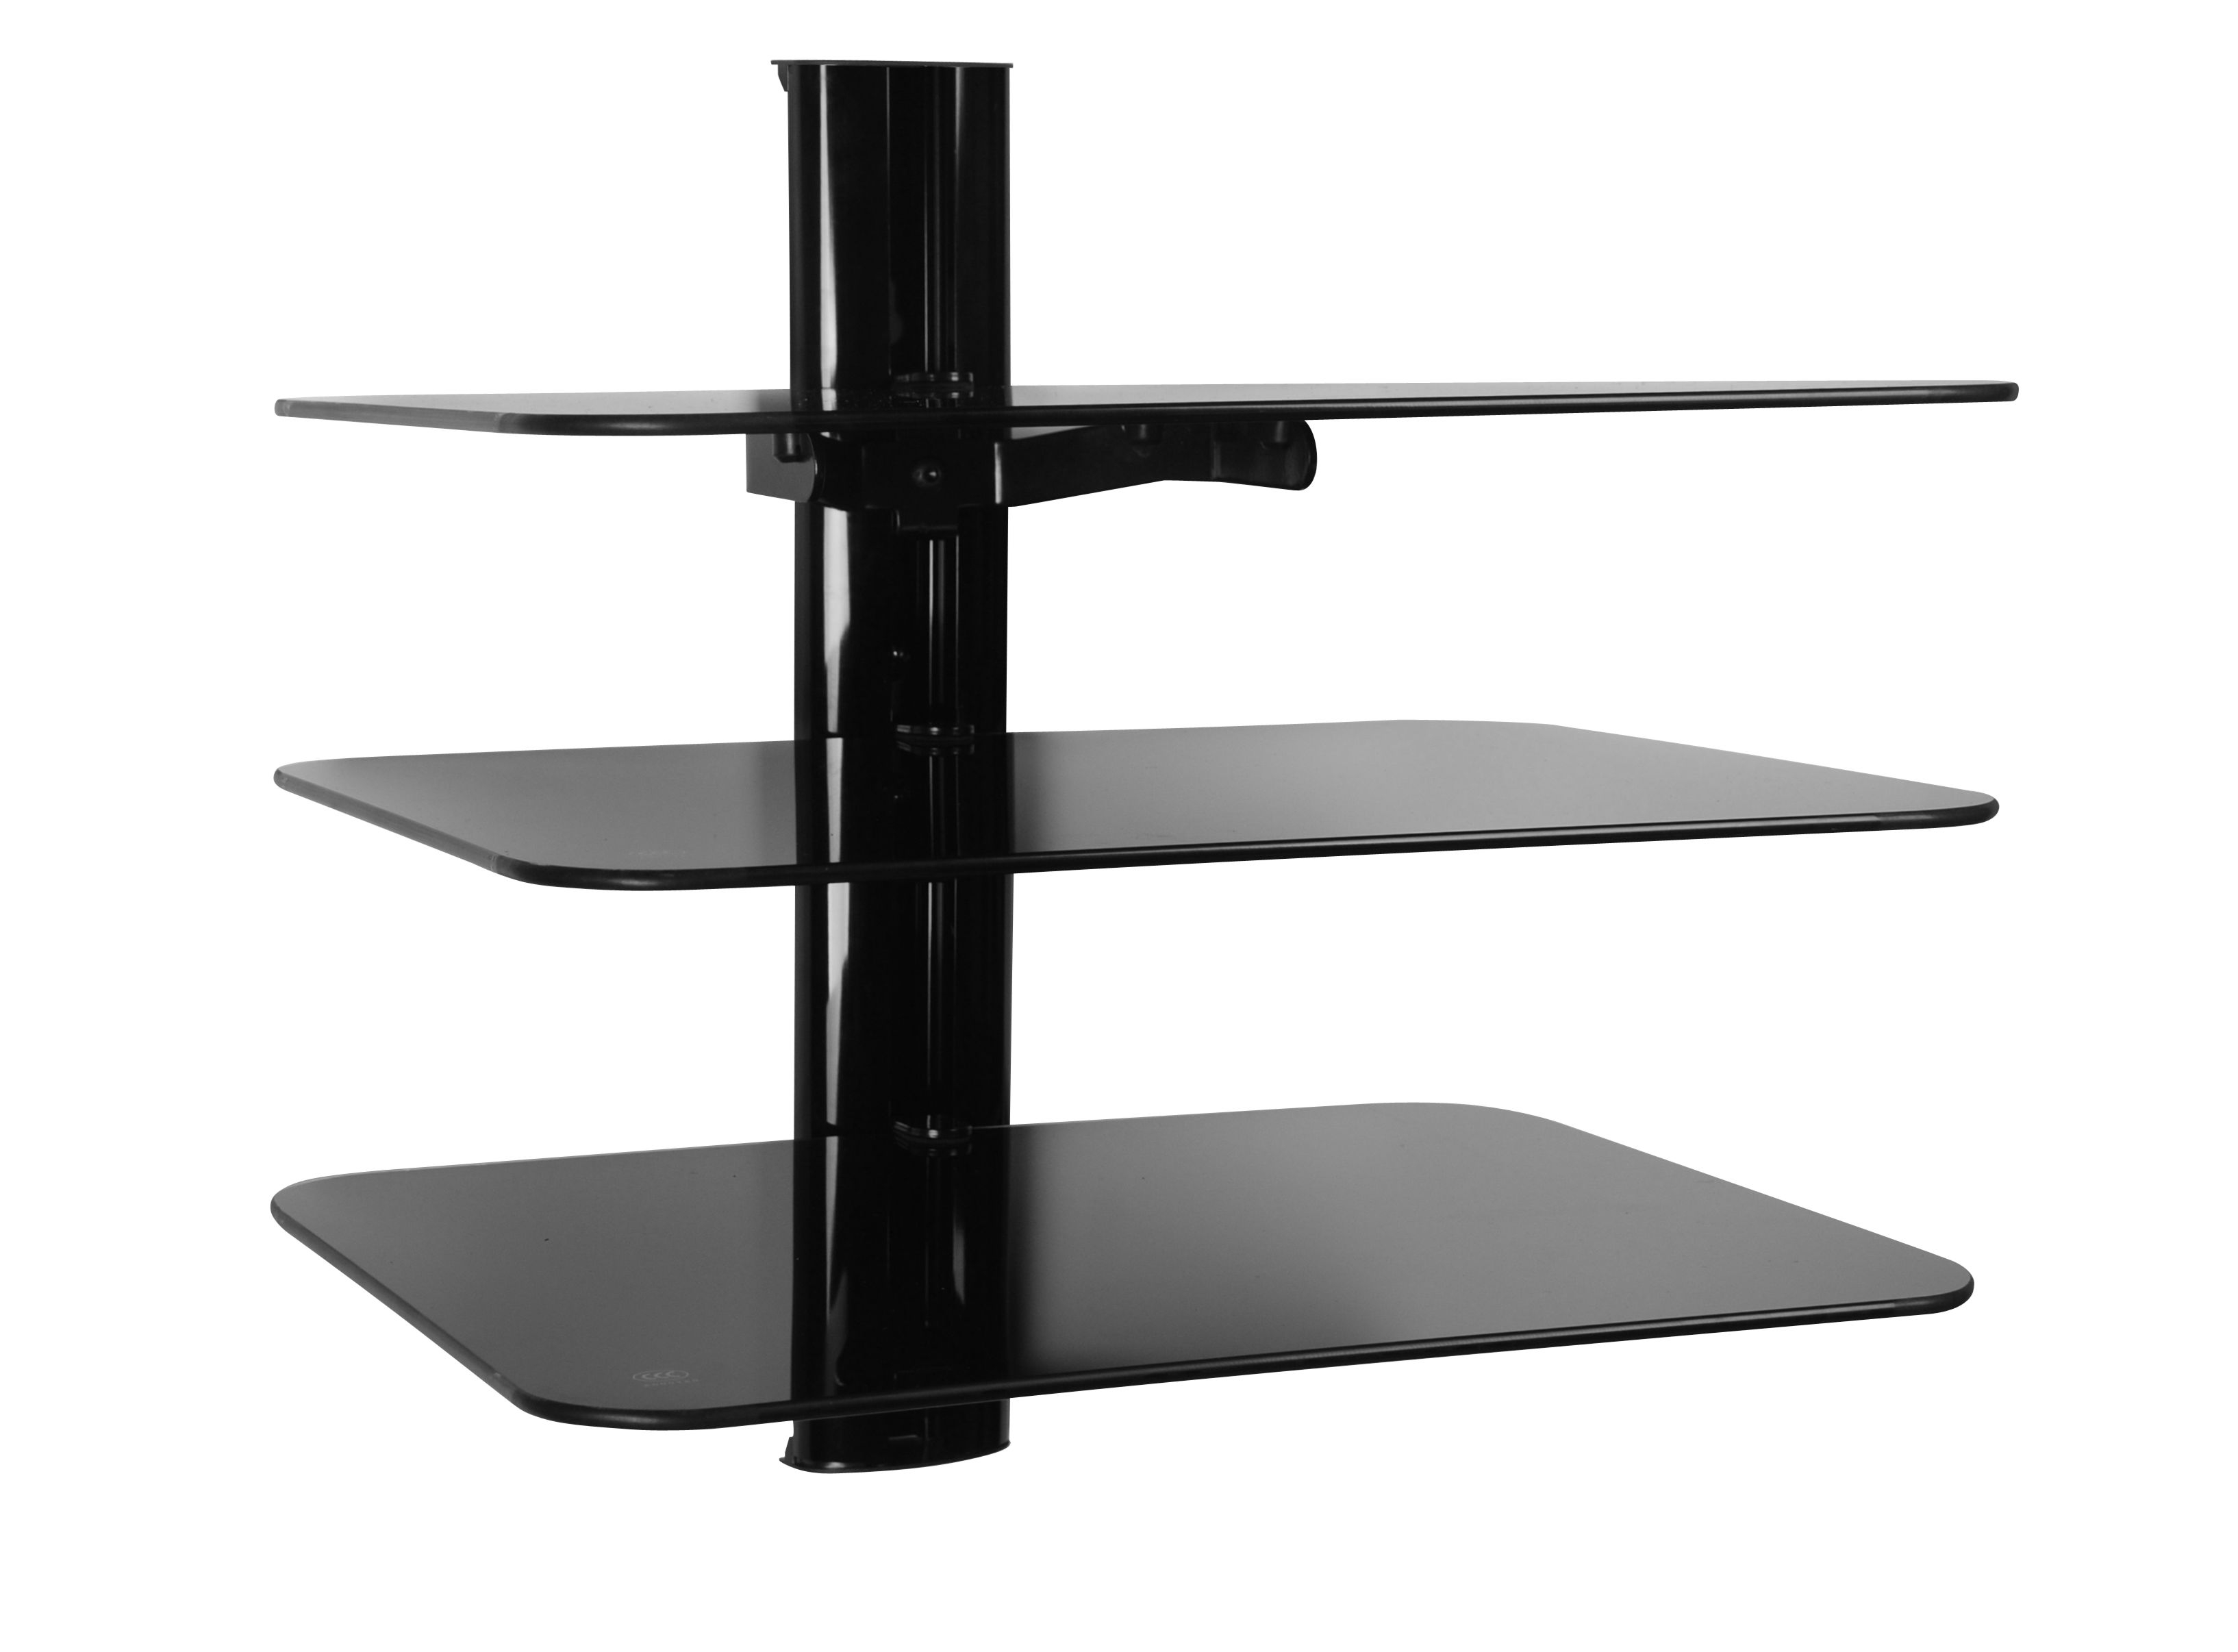 Triple Glass Av Shelving System Within Black Glass Floating Shelves (View 9 of 15)